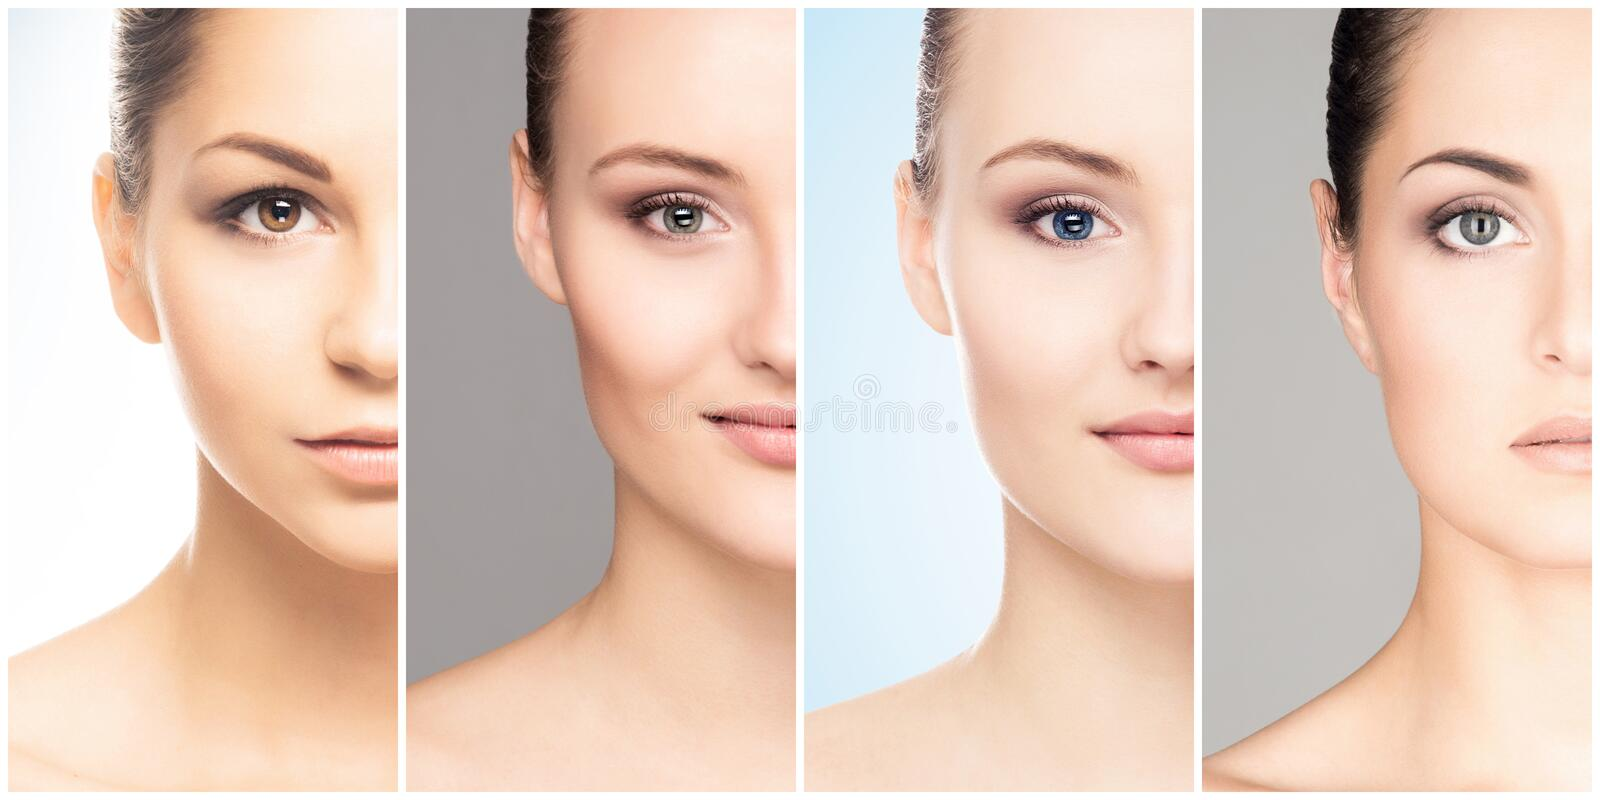 Human face in a collage. Young and healthy woman in plastic surgery, medicine, spa and face lifting concept. royalty free stock image